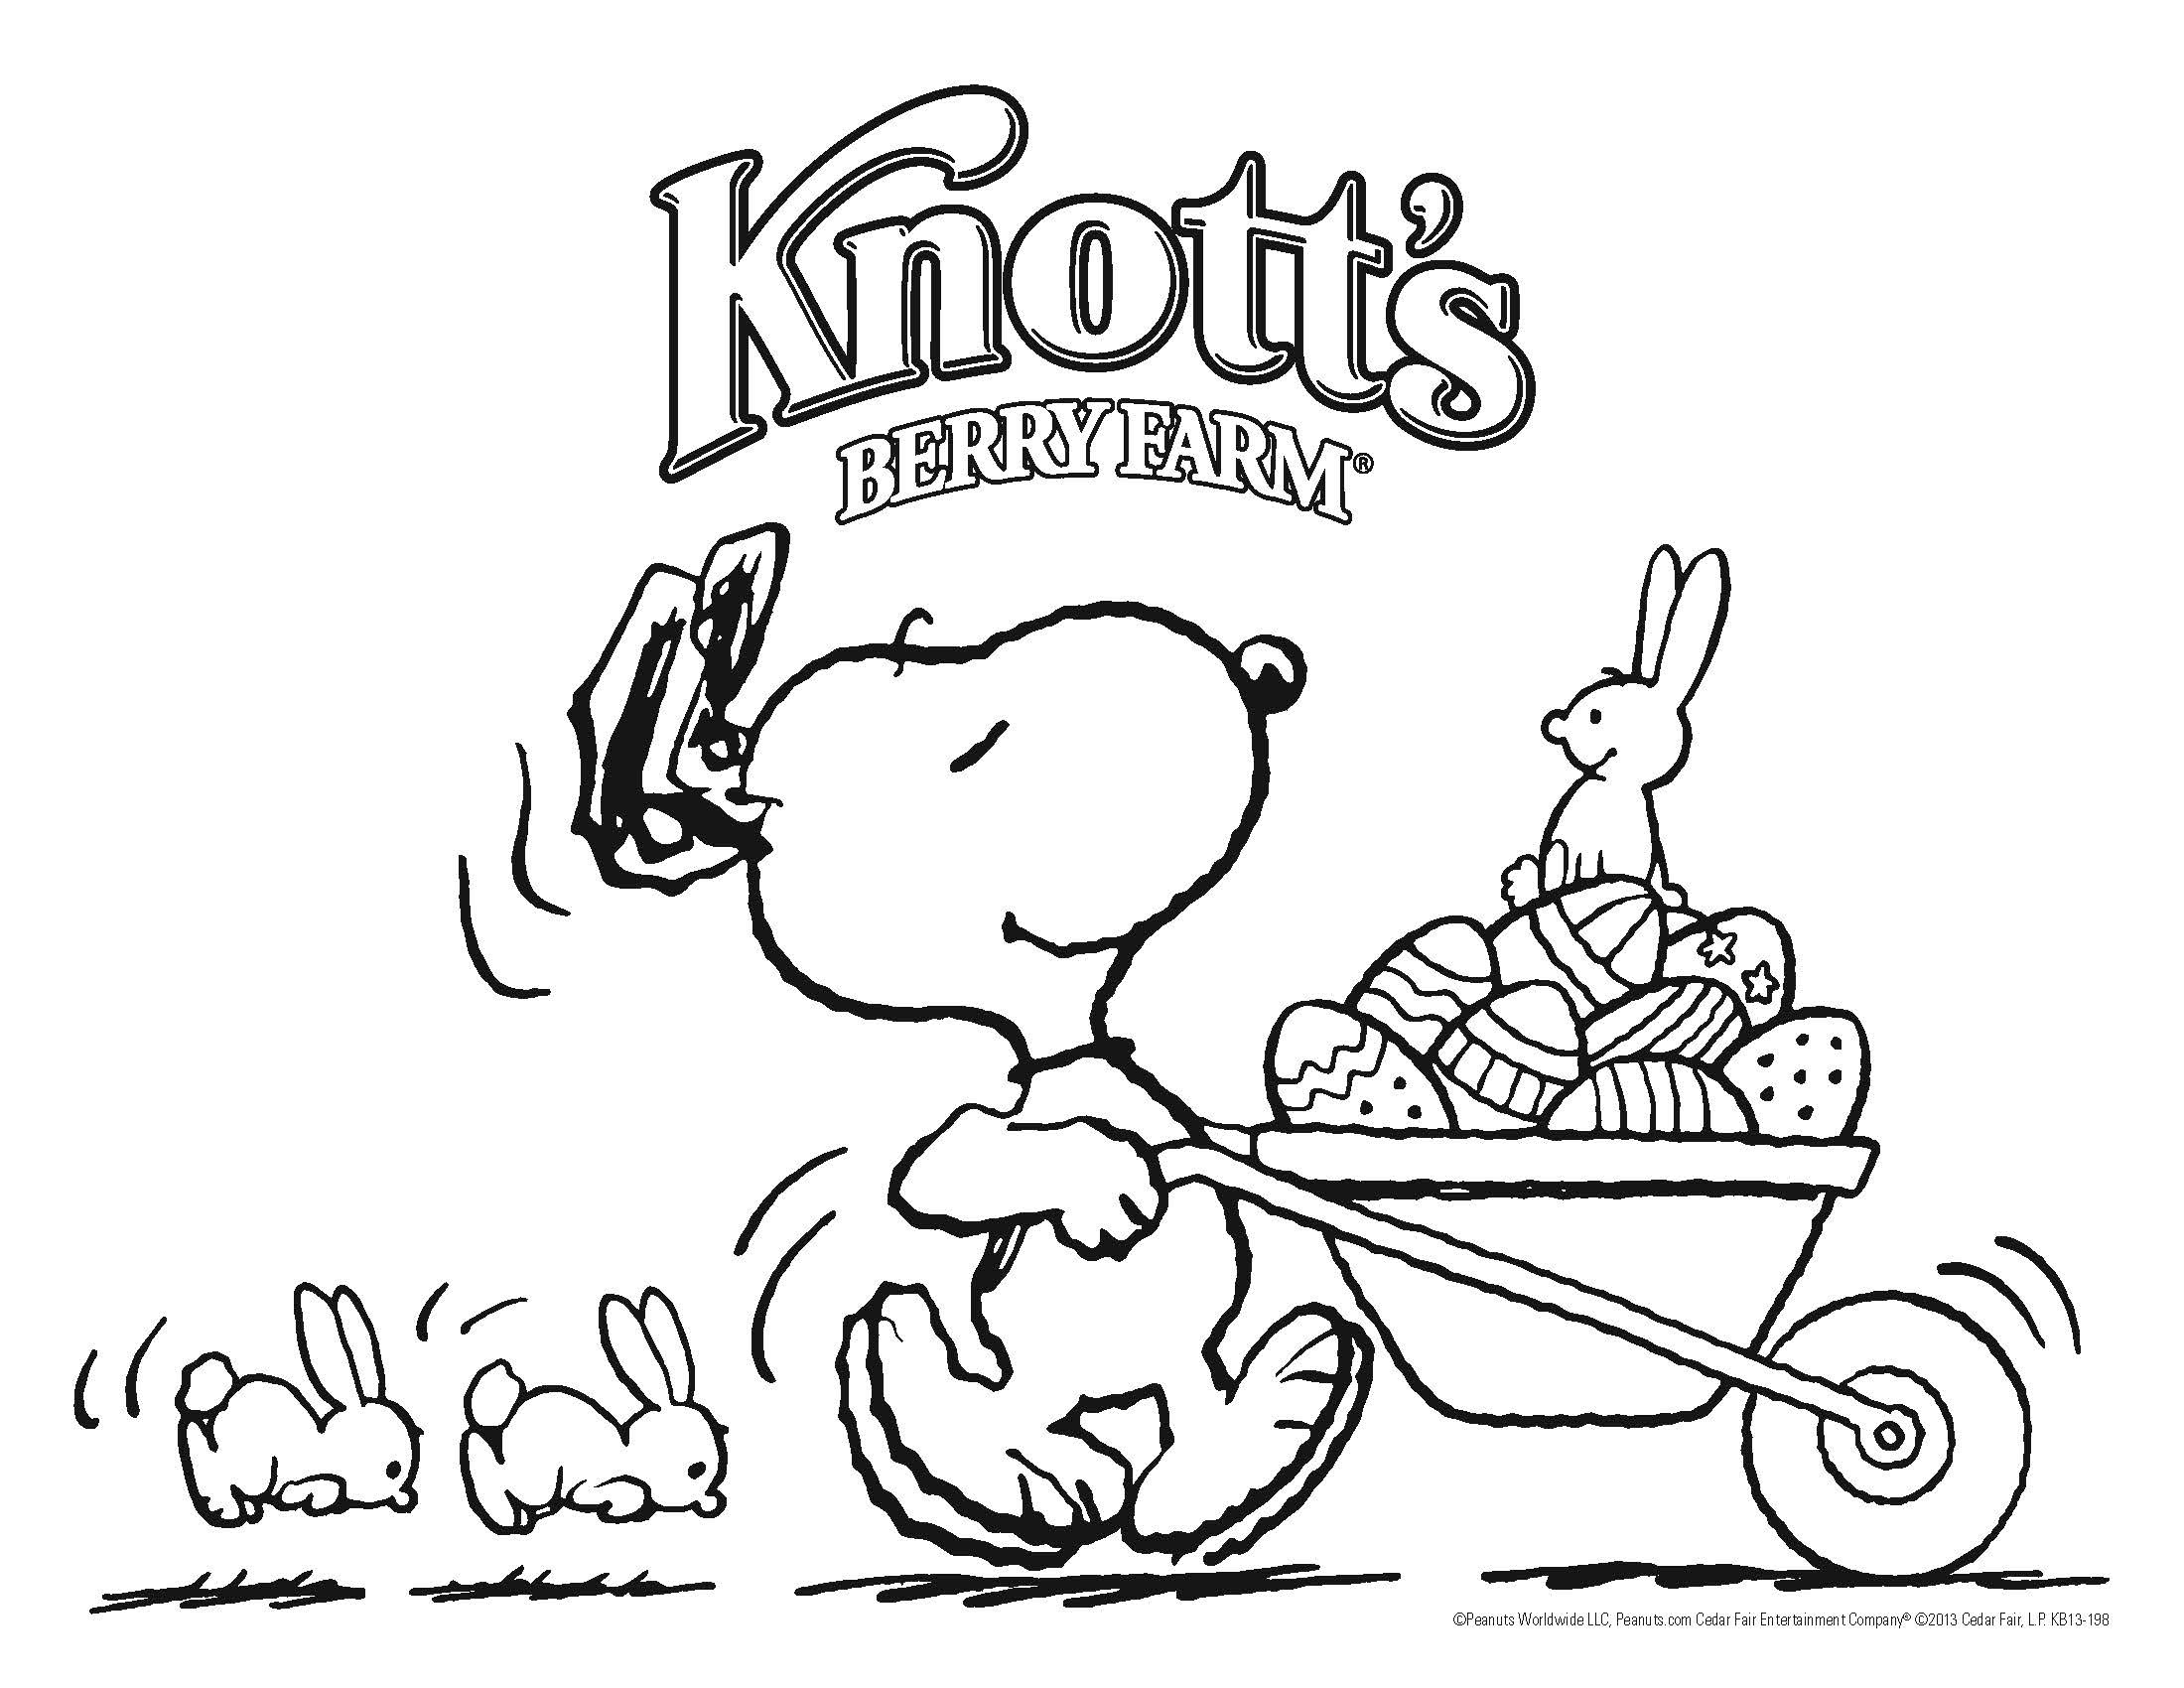 2200x1700 Charlie Brown And Friends Coloring Pages For Kids Best Of Charlie